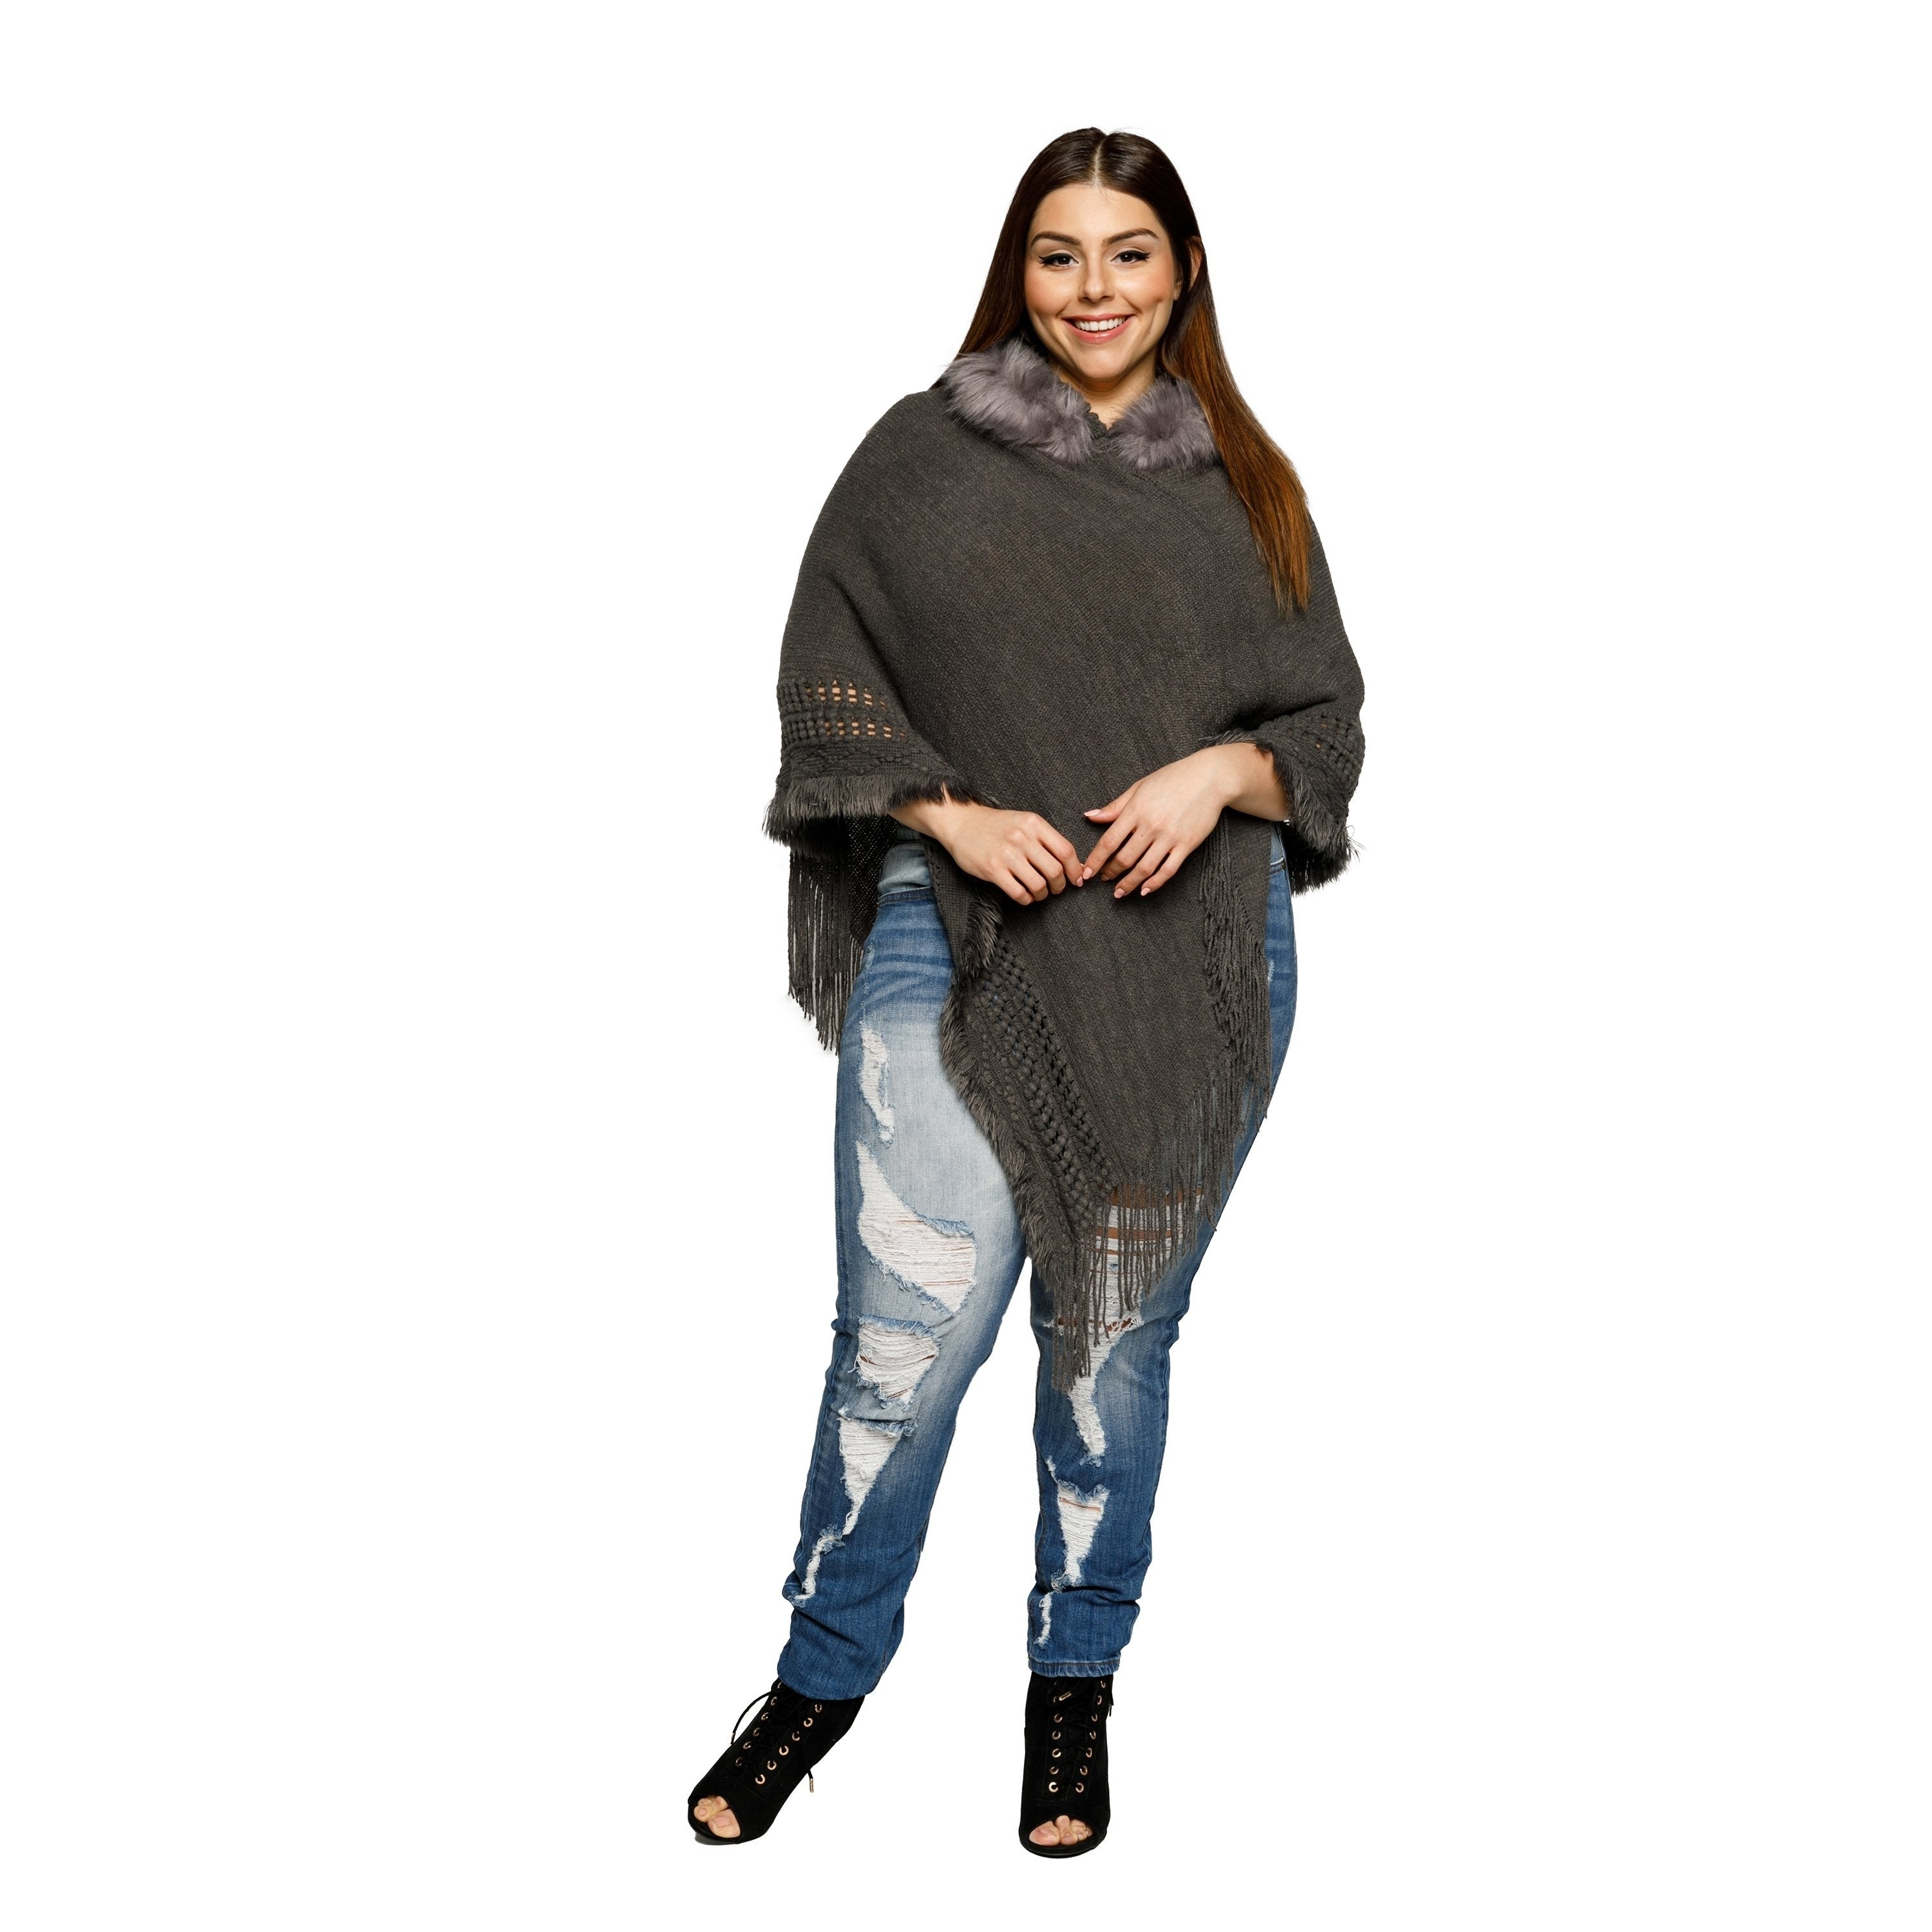 735d9683d0a44 Shop Xehar Womens Plus Size Fringe Faux Fur Trim Hoodie Poncho Sweater -  Free Shipping On Orders Over  45 - Overstock - 18529833